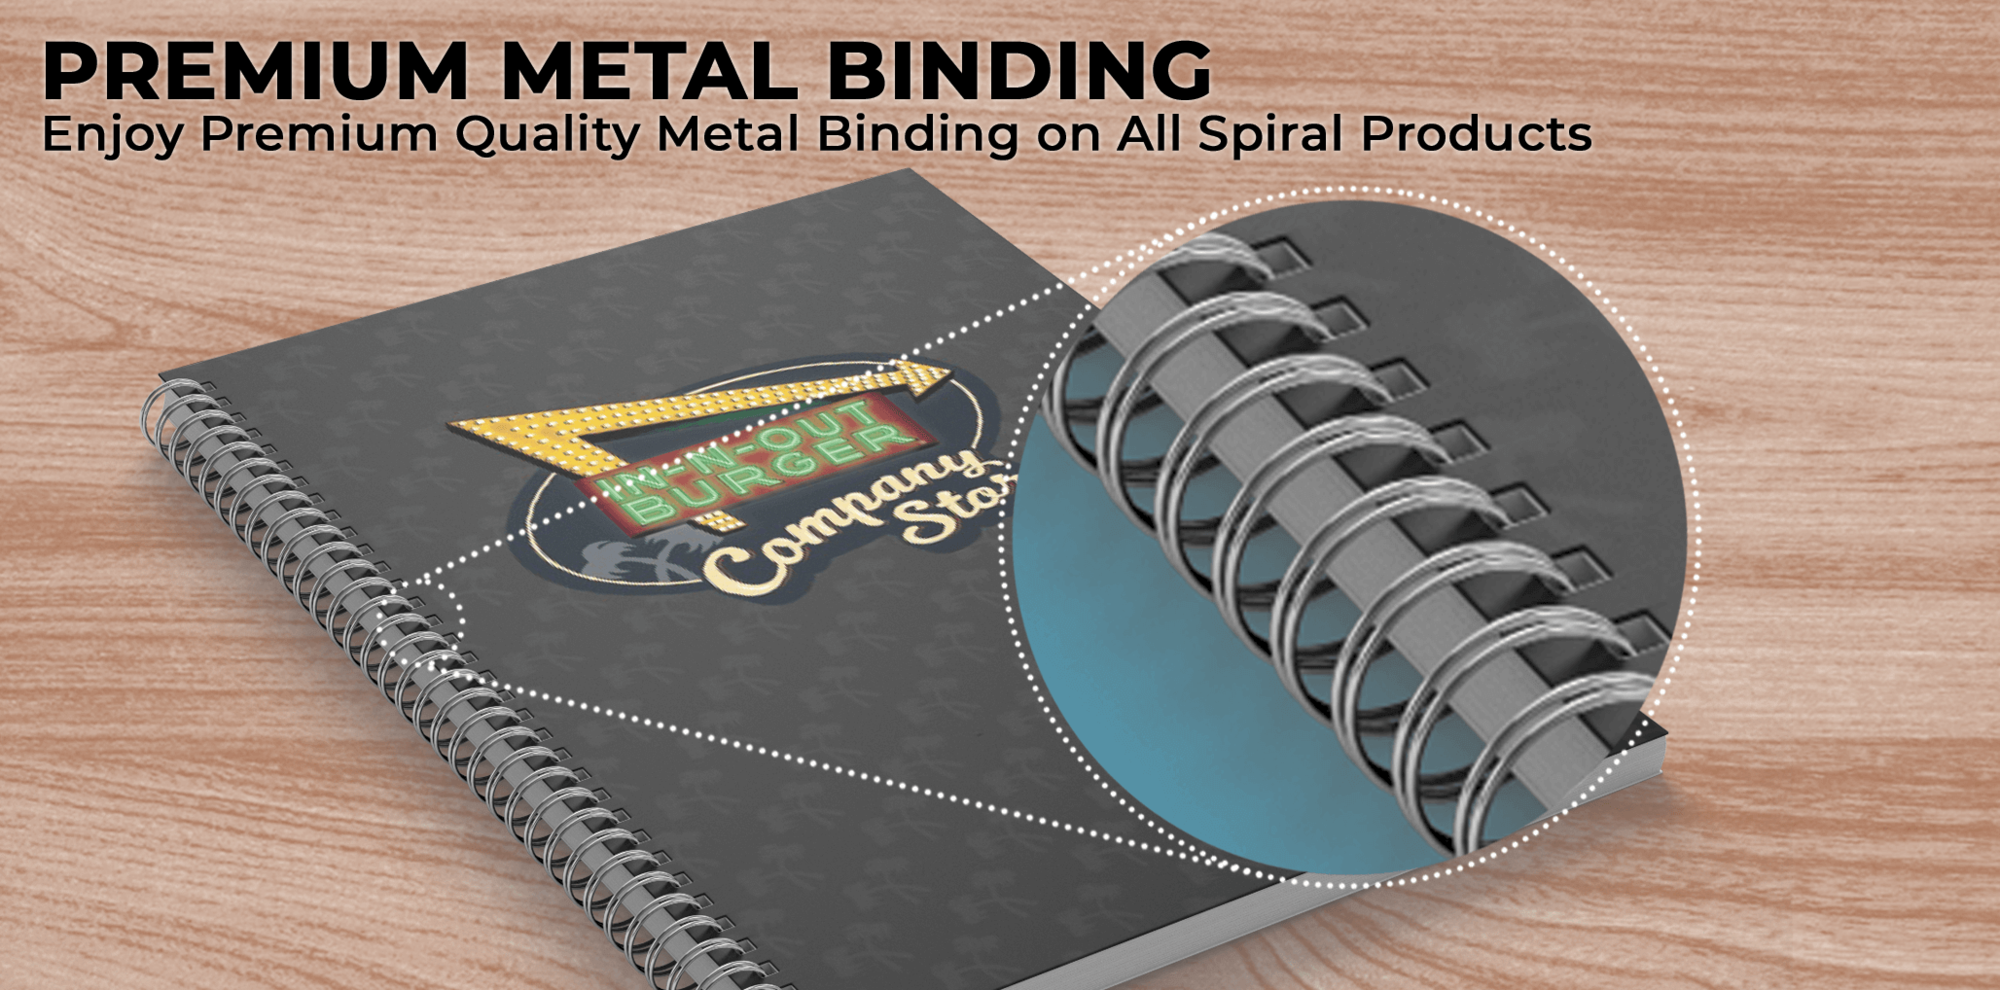 https://printpps.com/images/products_gallery_images/Banner_Spiral_FeatBinding23.png